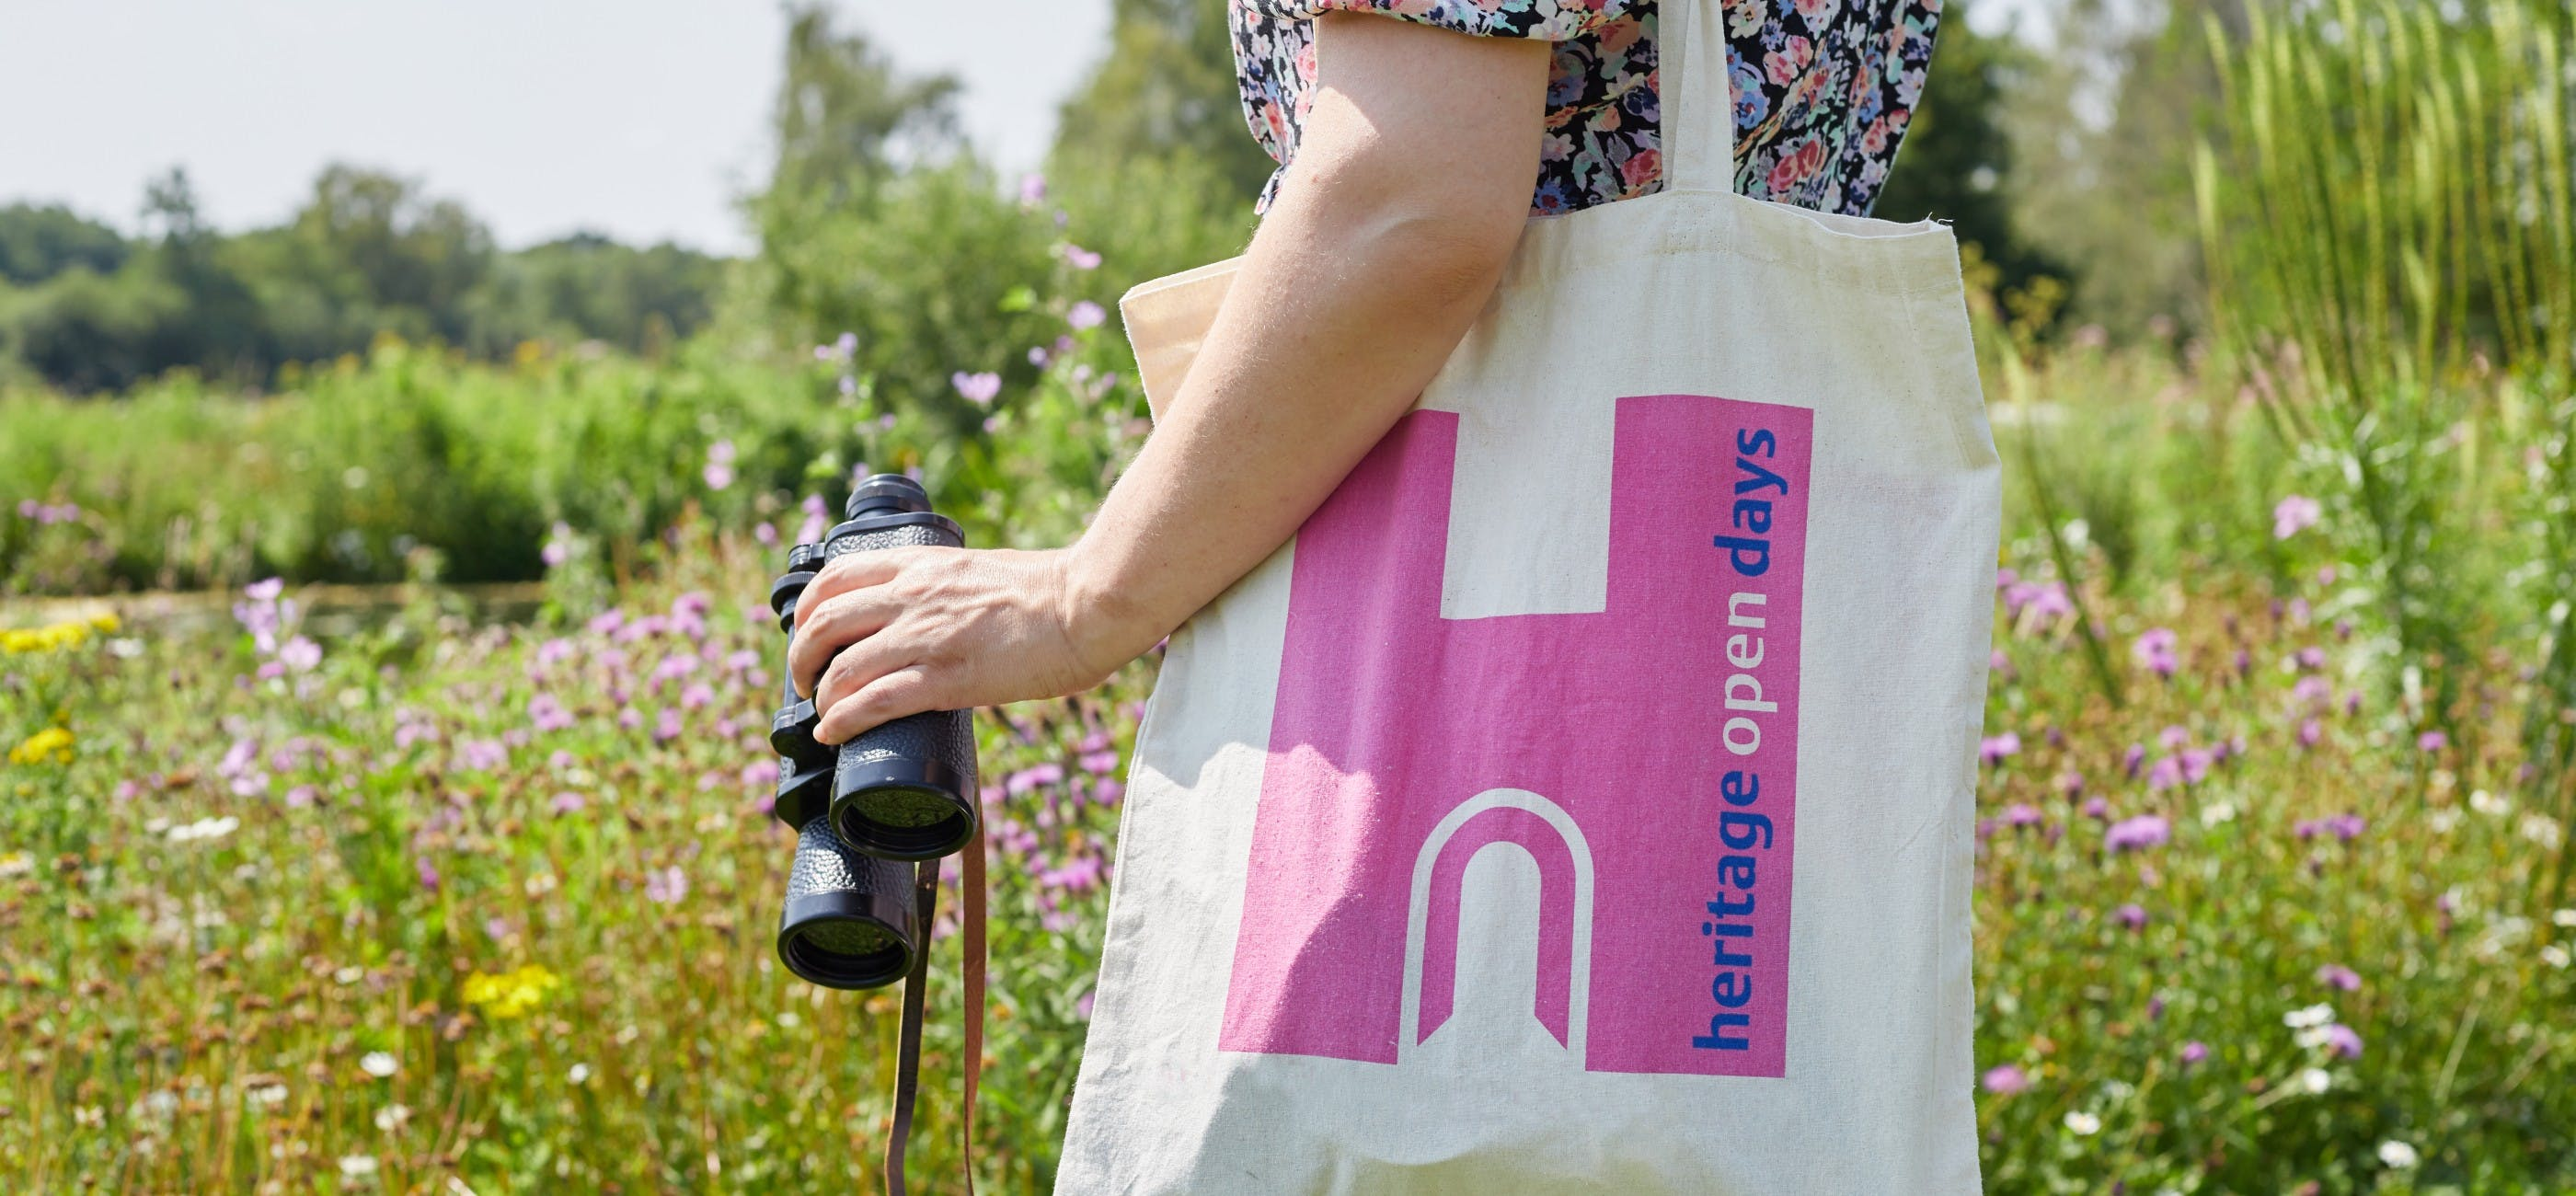 Close up of a person carrying a Heritage Open Days bag and a pair of binoculars with a field of flowers in the background.